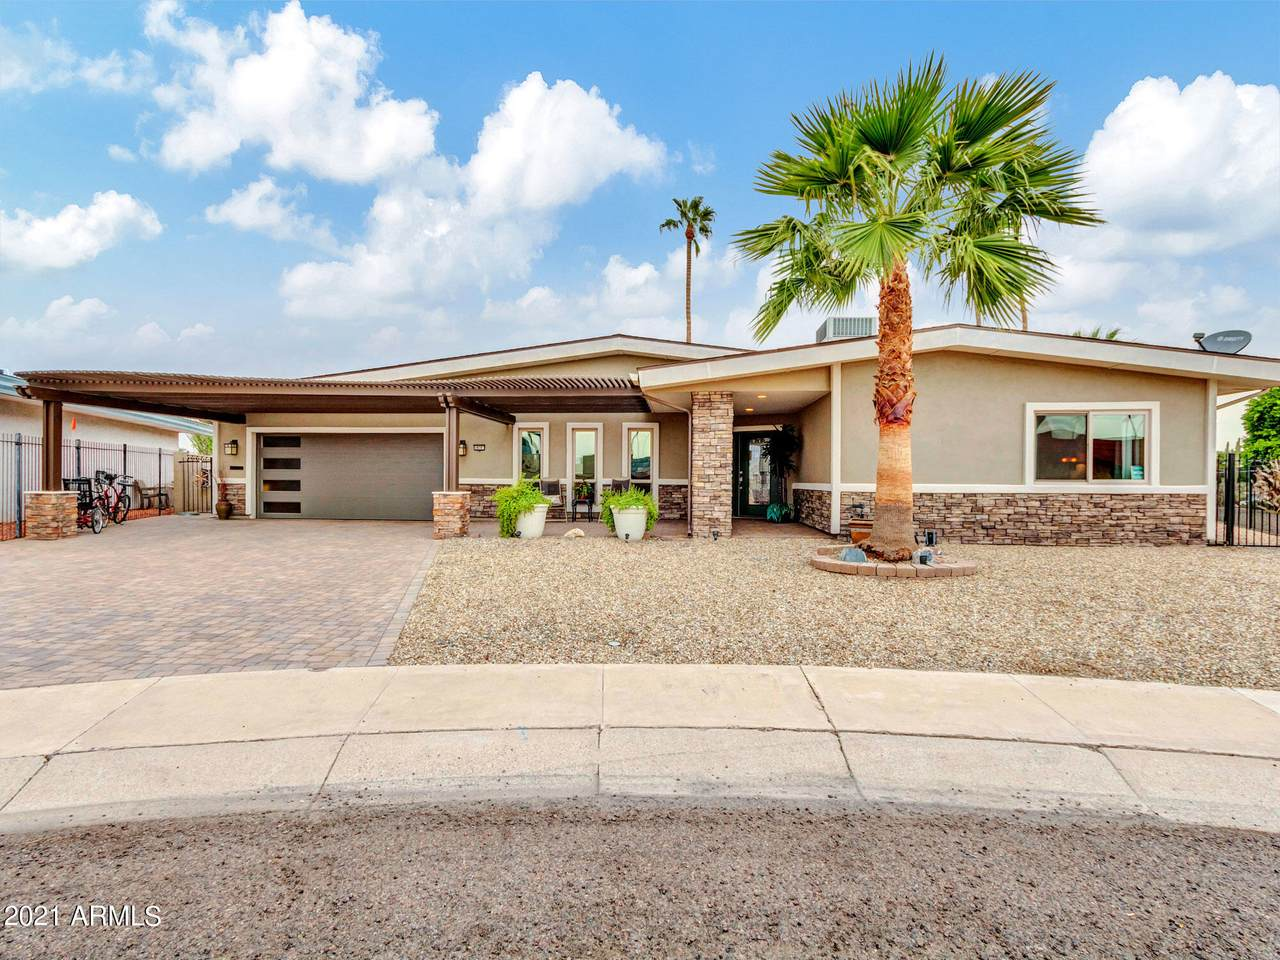 9979 Willow Point - Photo 1